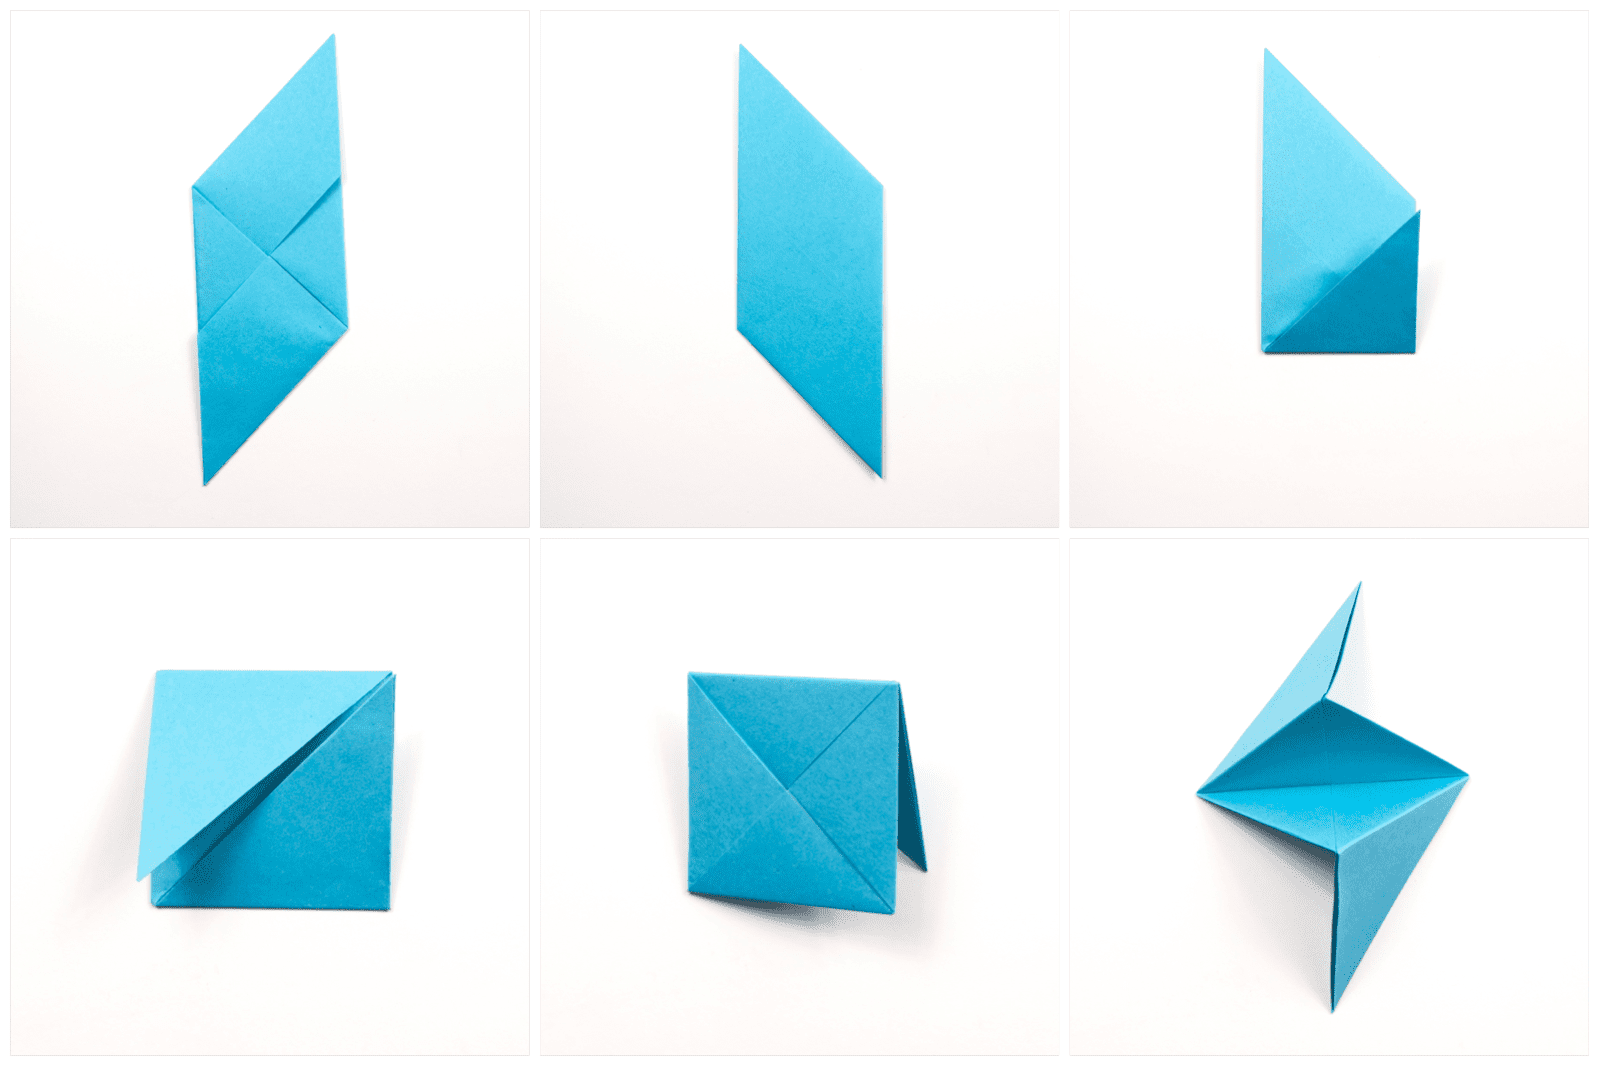 How to Fold 3D Origami Pieces - Make the 3D Origami Triangle Units ... | 1066x1600